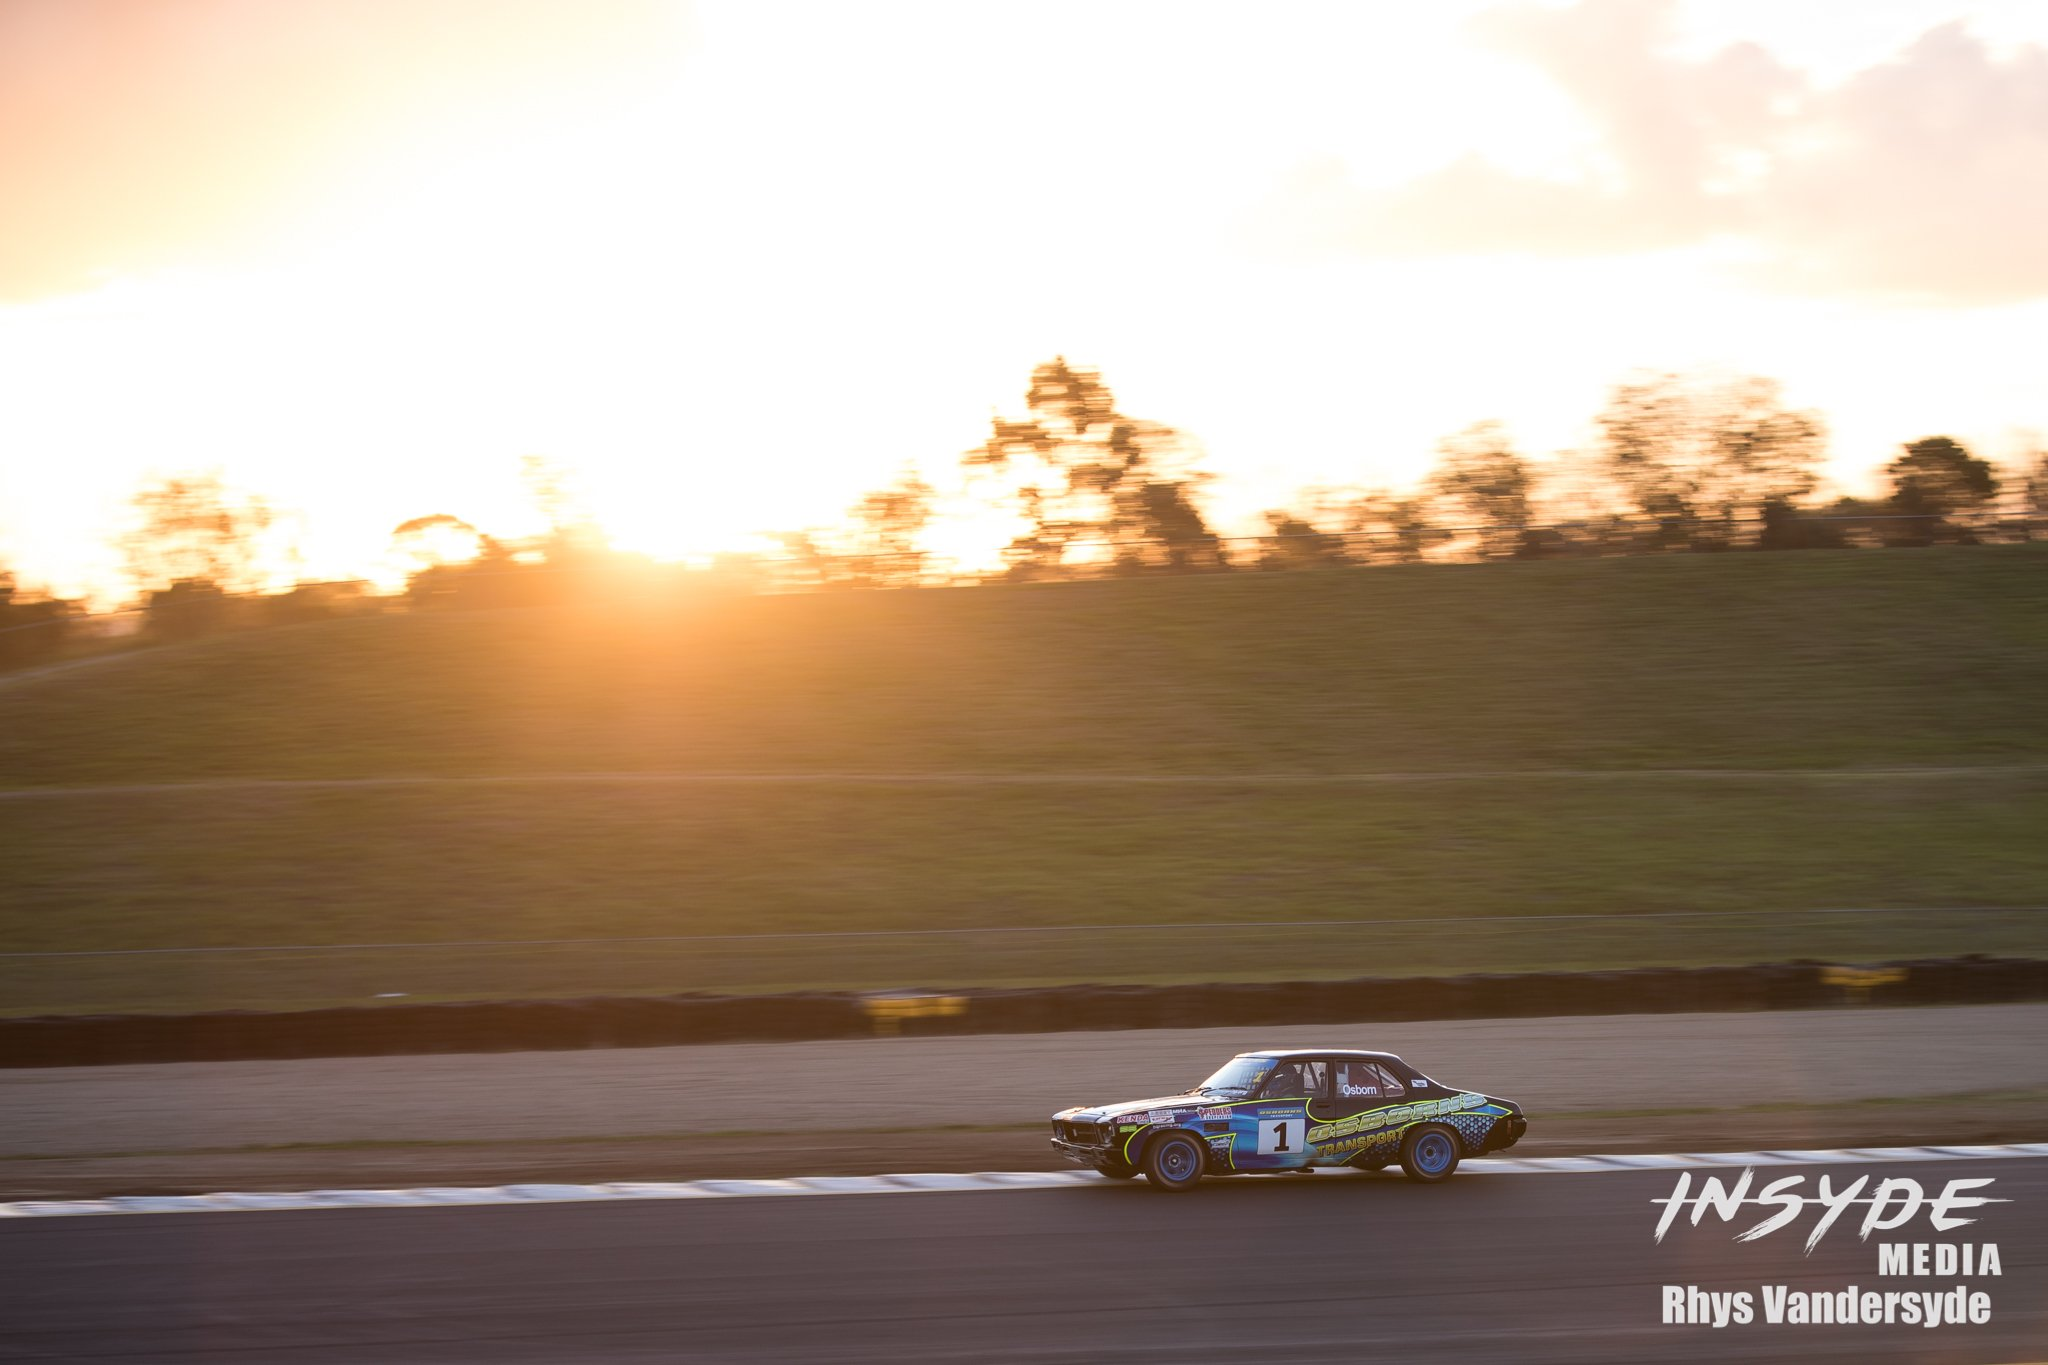 NSW State Champs at Sydney Motorsport Park